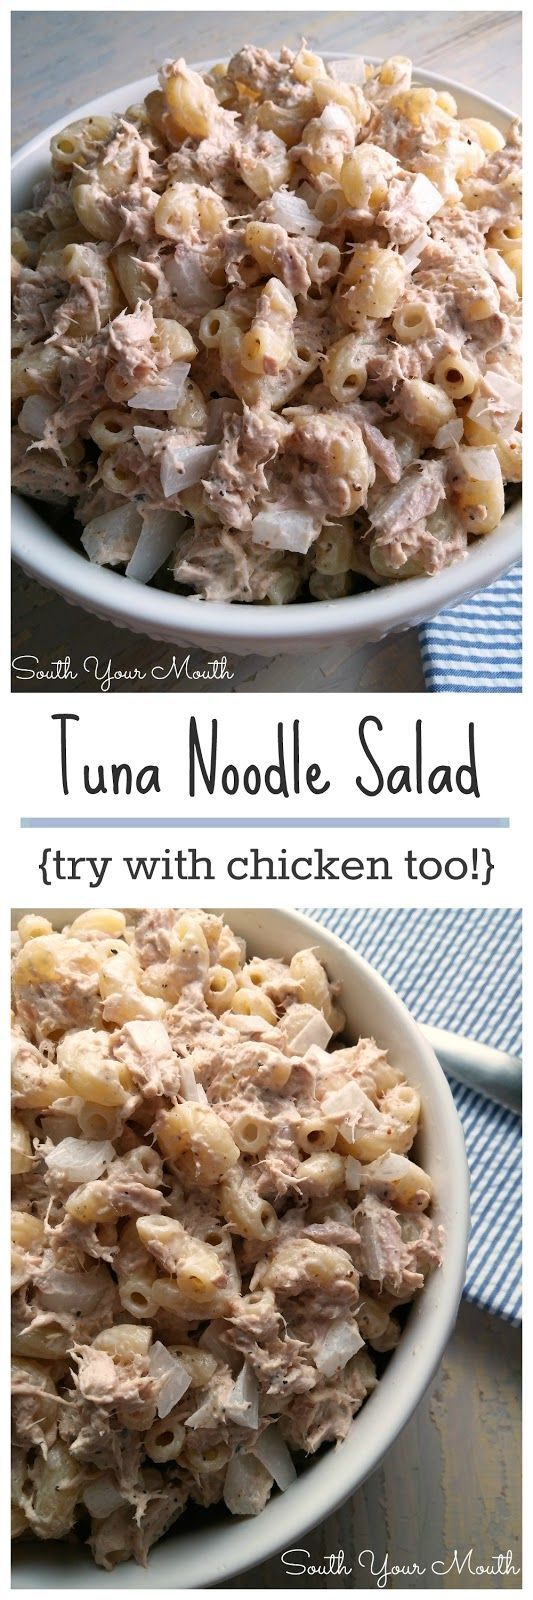 Tuna Noodle Salad! A basic, hearty recipe that can also be made with chicken! LOVE to take this to the beach, on picnics or just keep in the fridge for quick meals or hearty snacks.